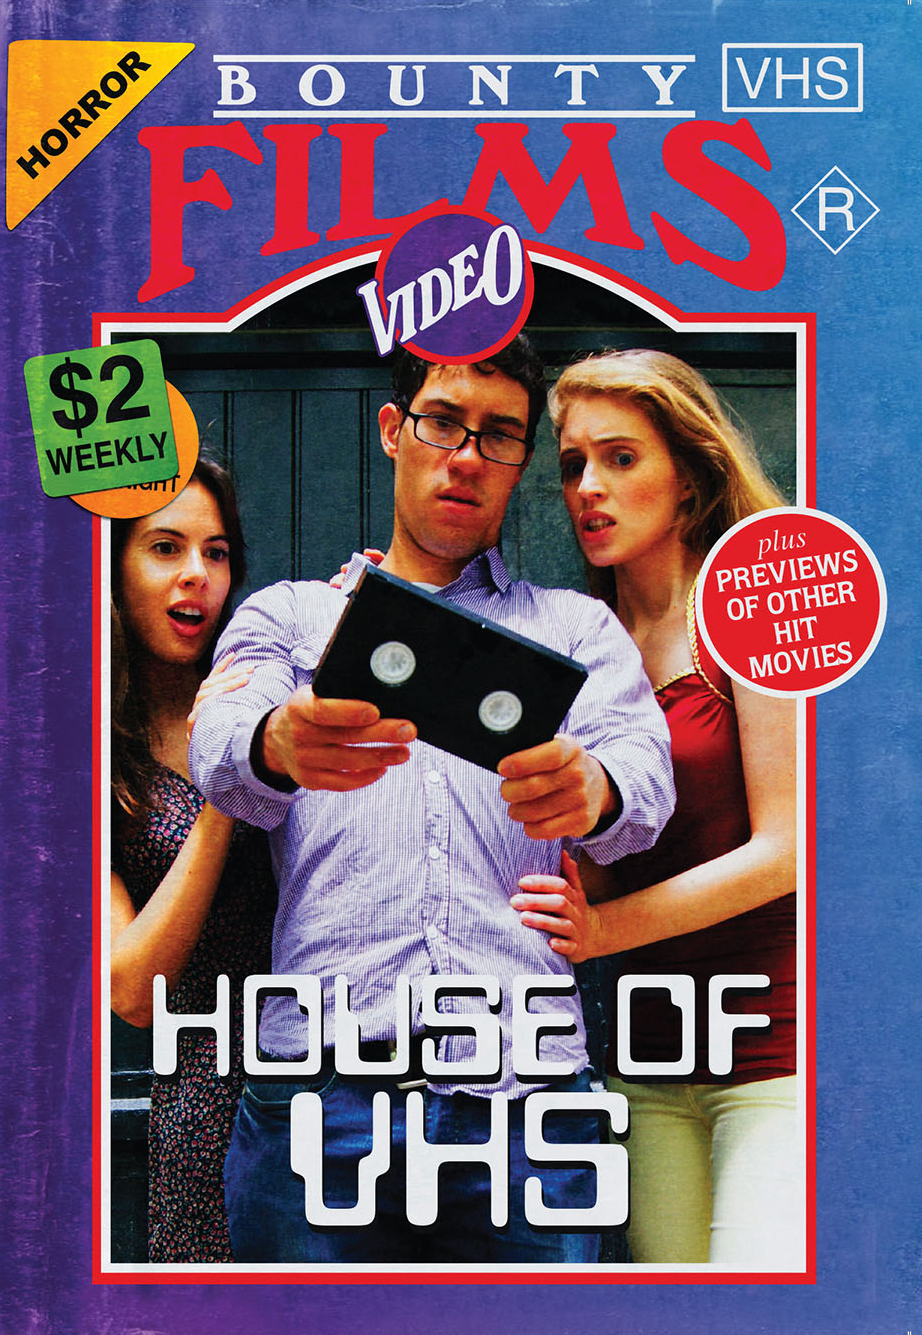 House of VHS - VHS Cover